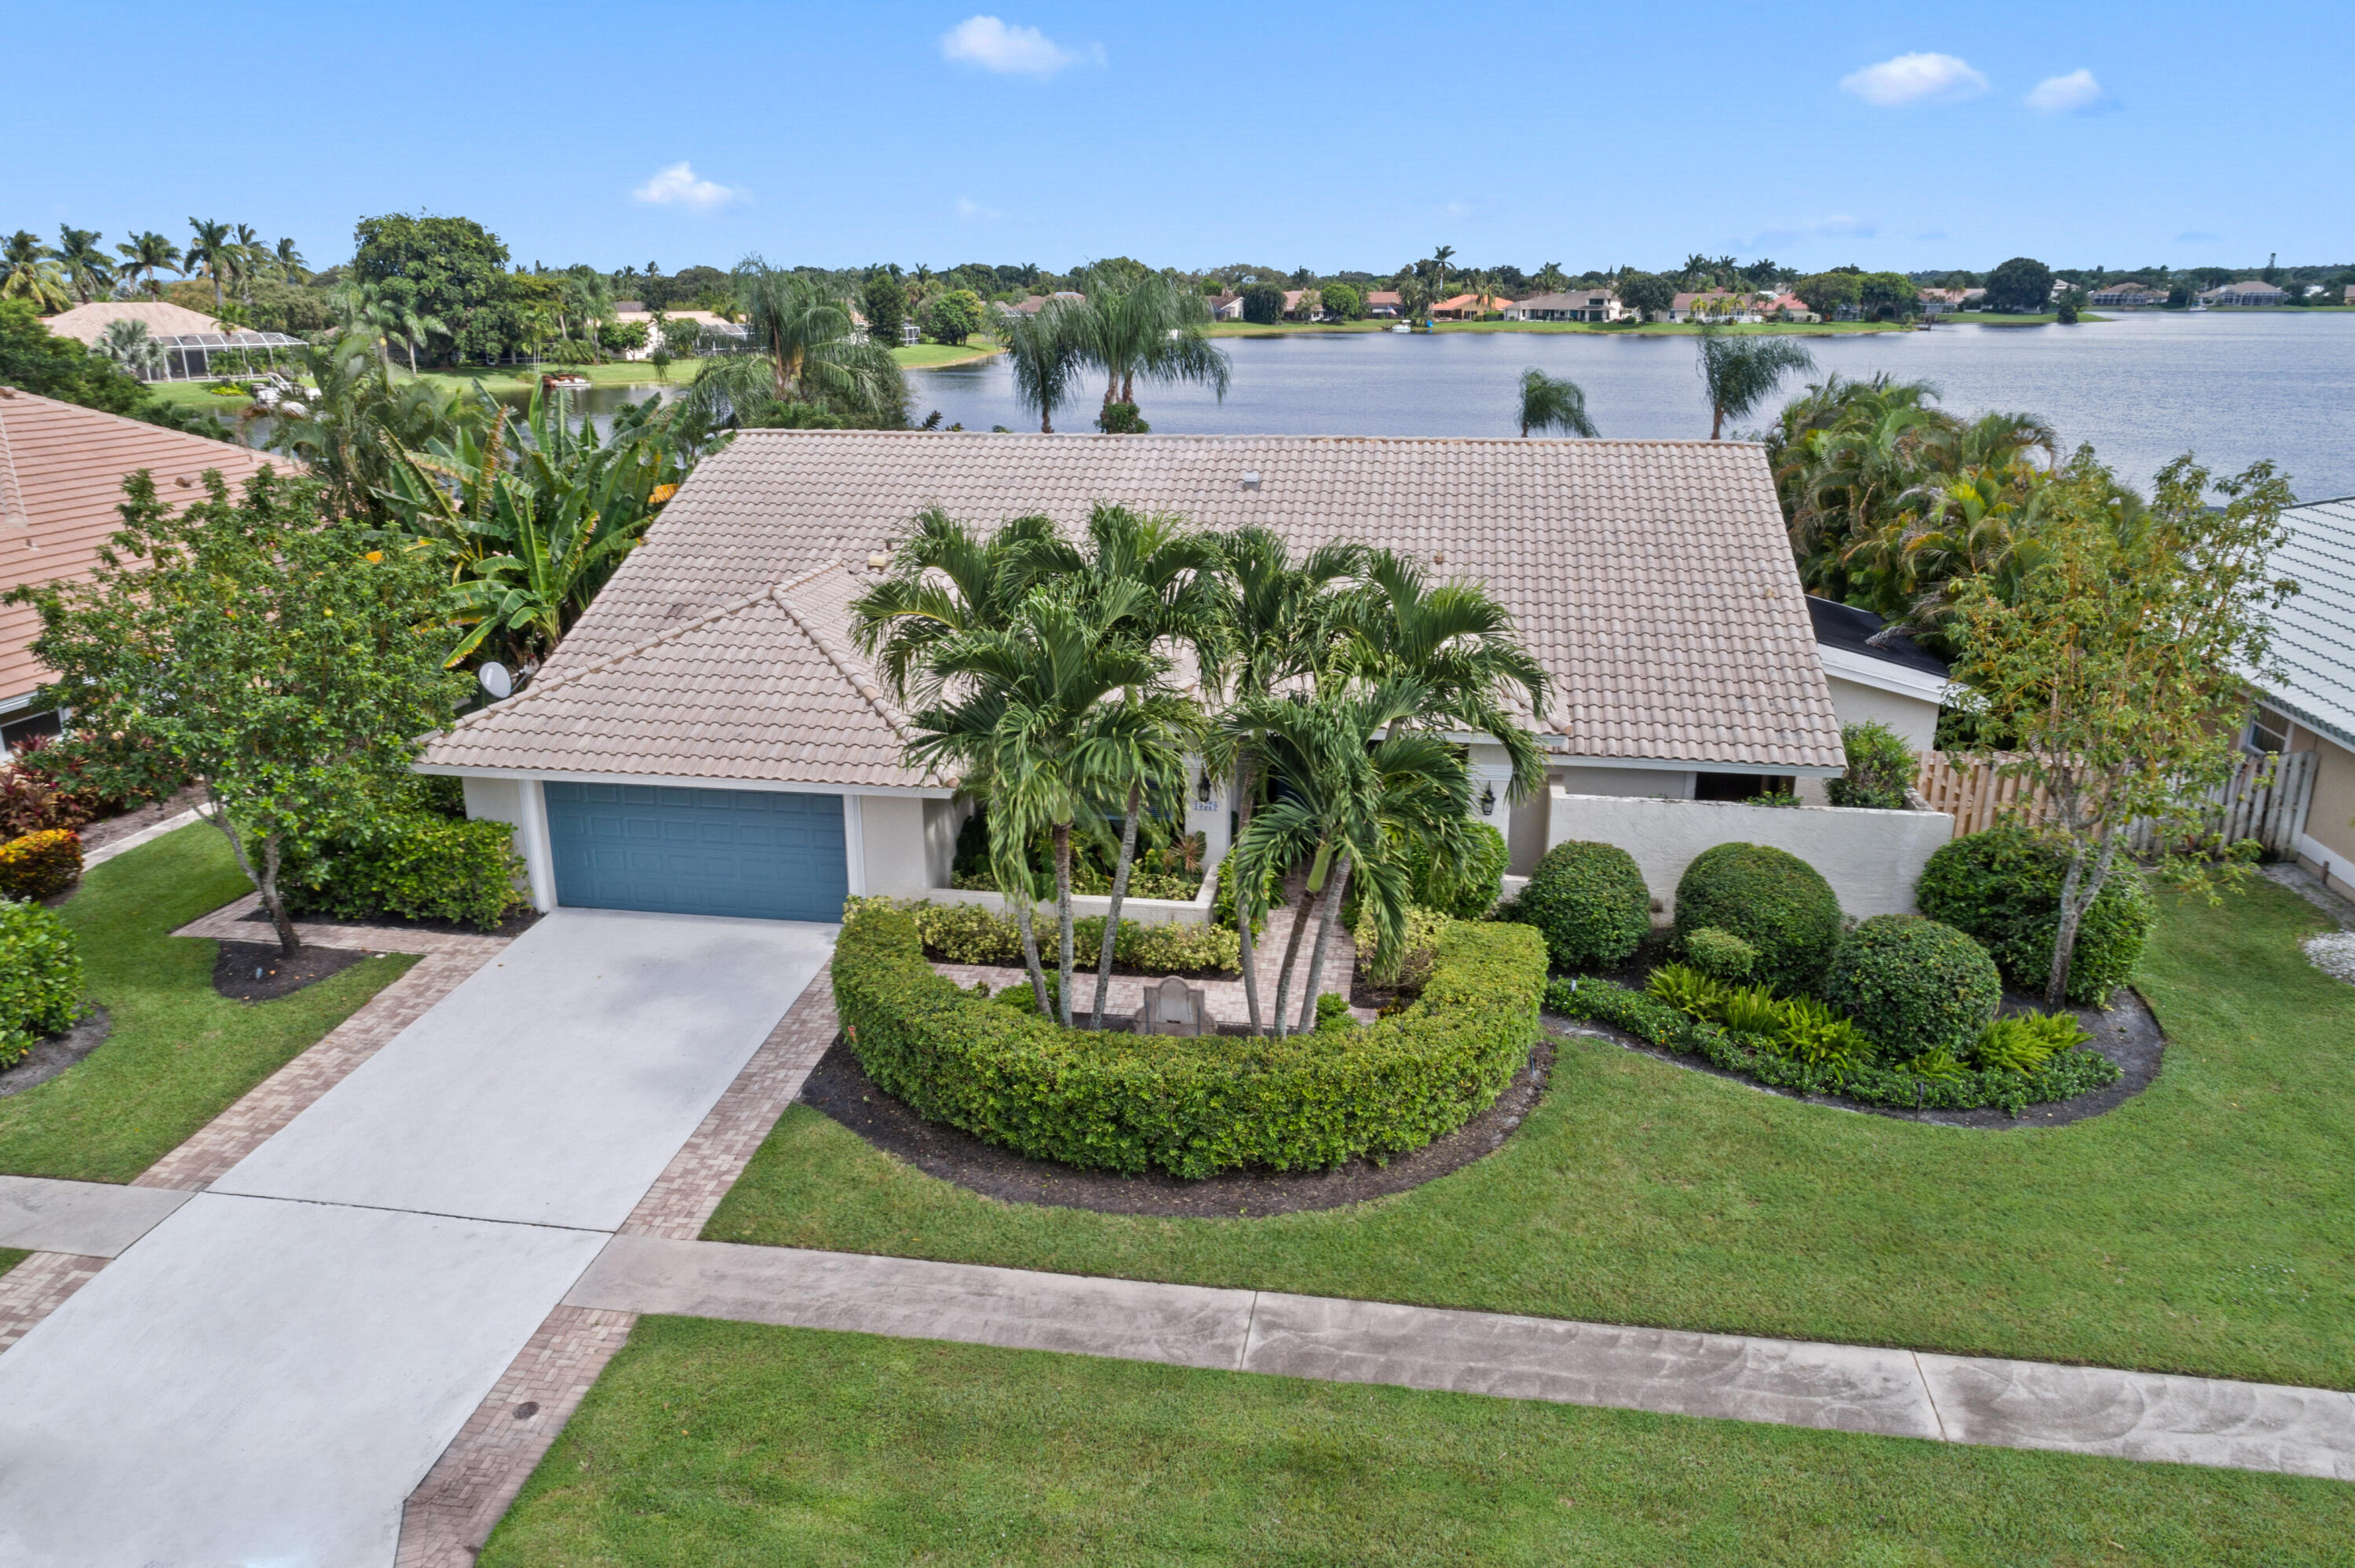 13579  Staimford Drive  For Sale 10748898, FL